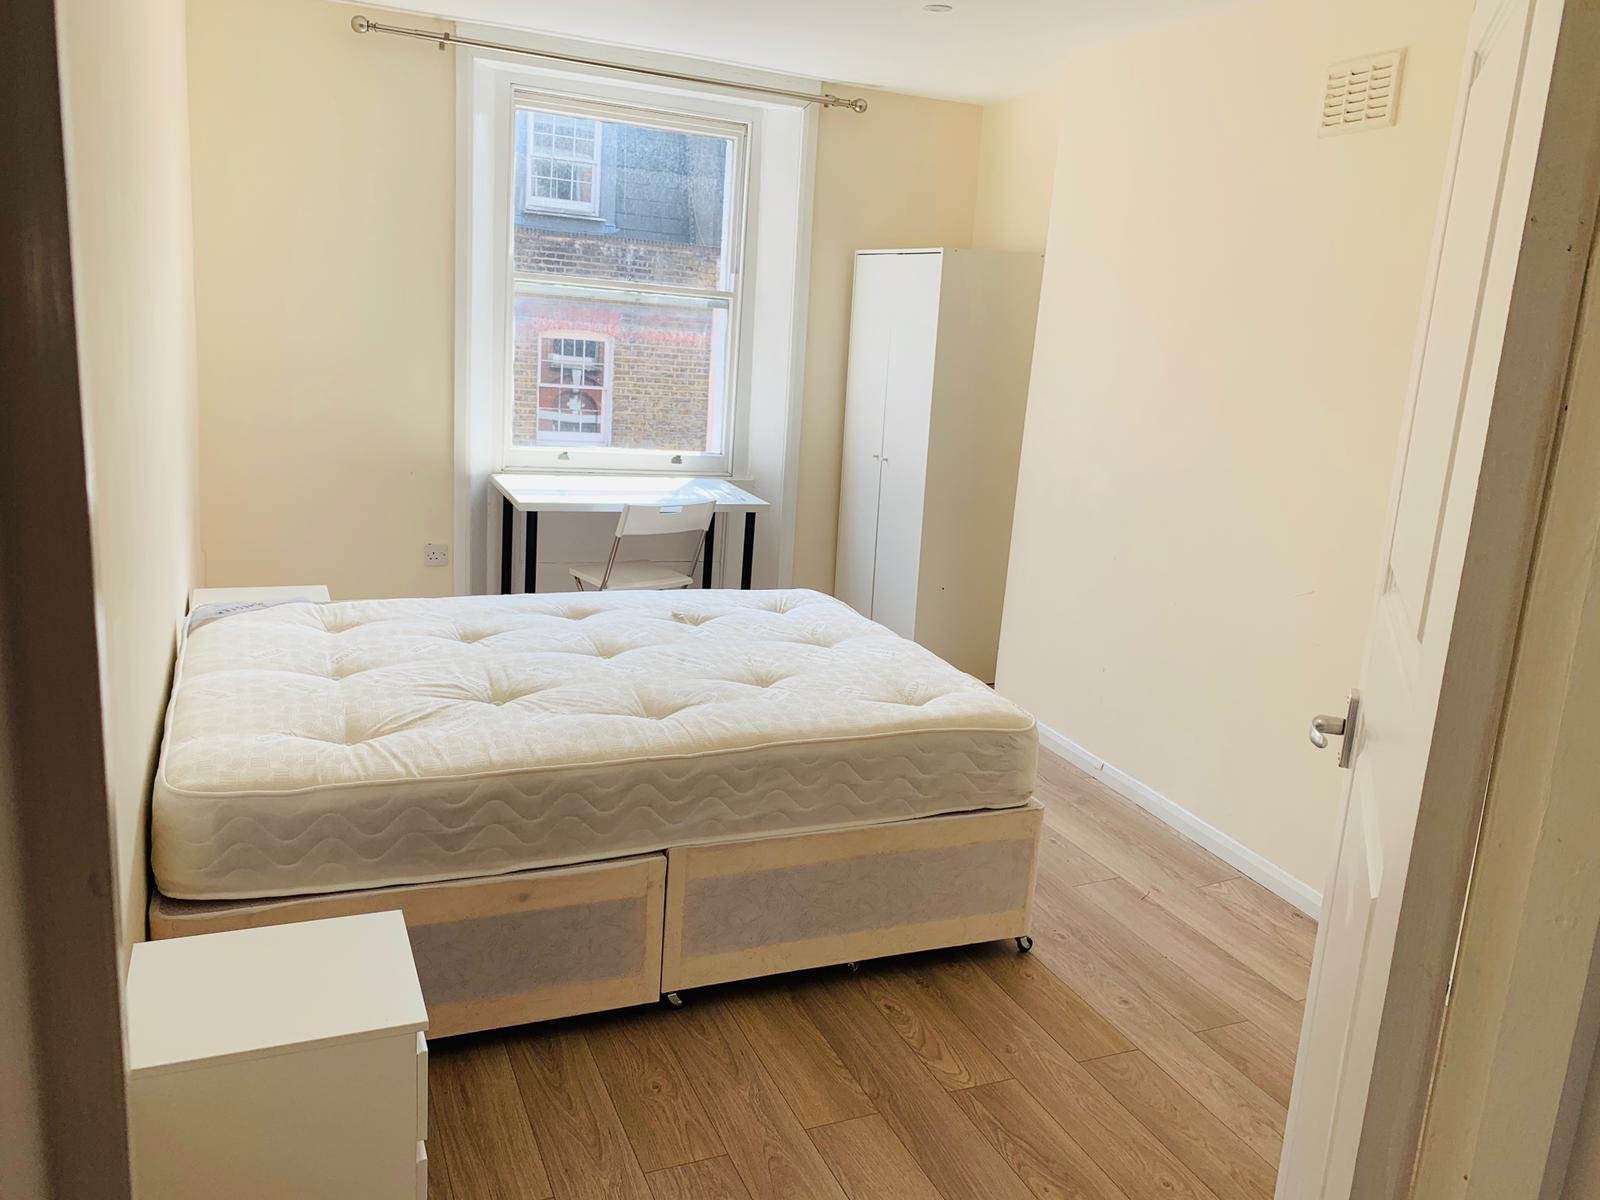 Photo 1, Single room - C Old Compton St in London